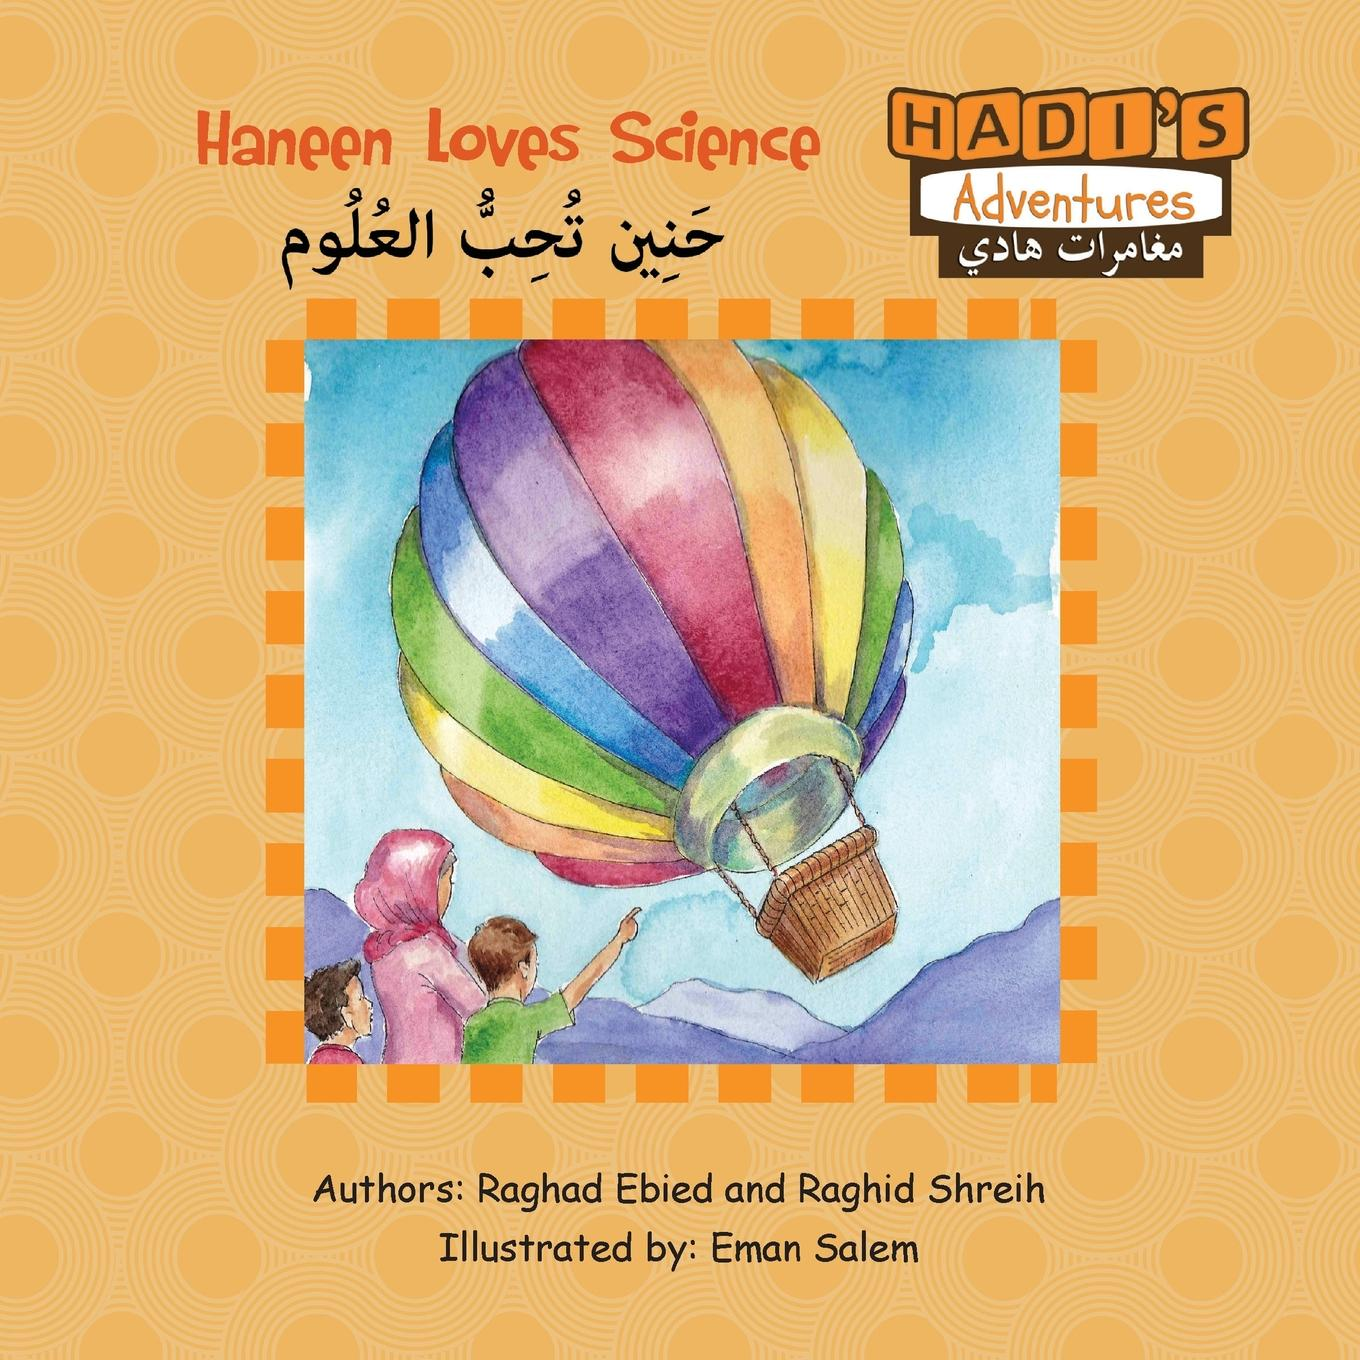 Hadi's Adventures: Haneen Loves Science (Paperback)